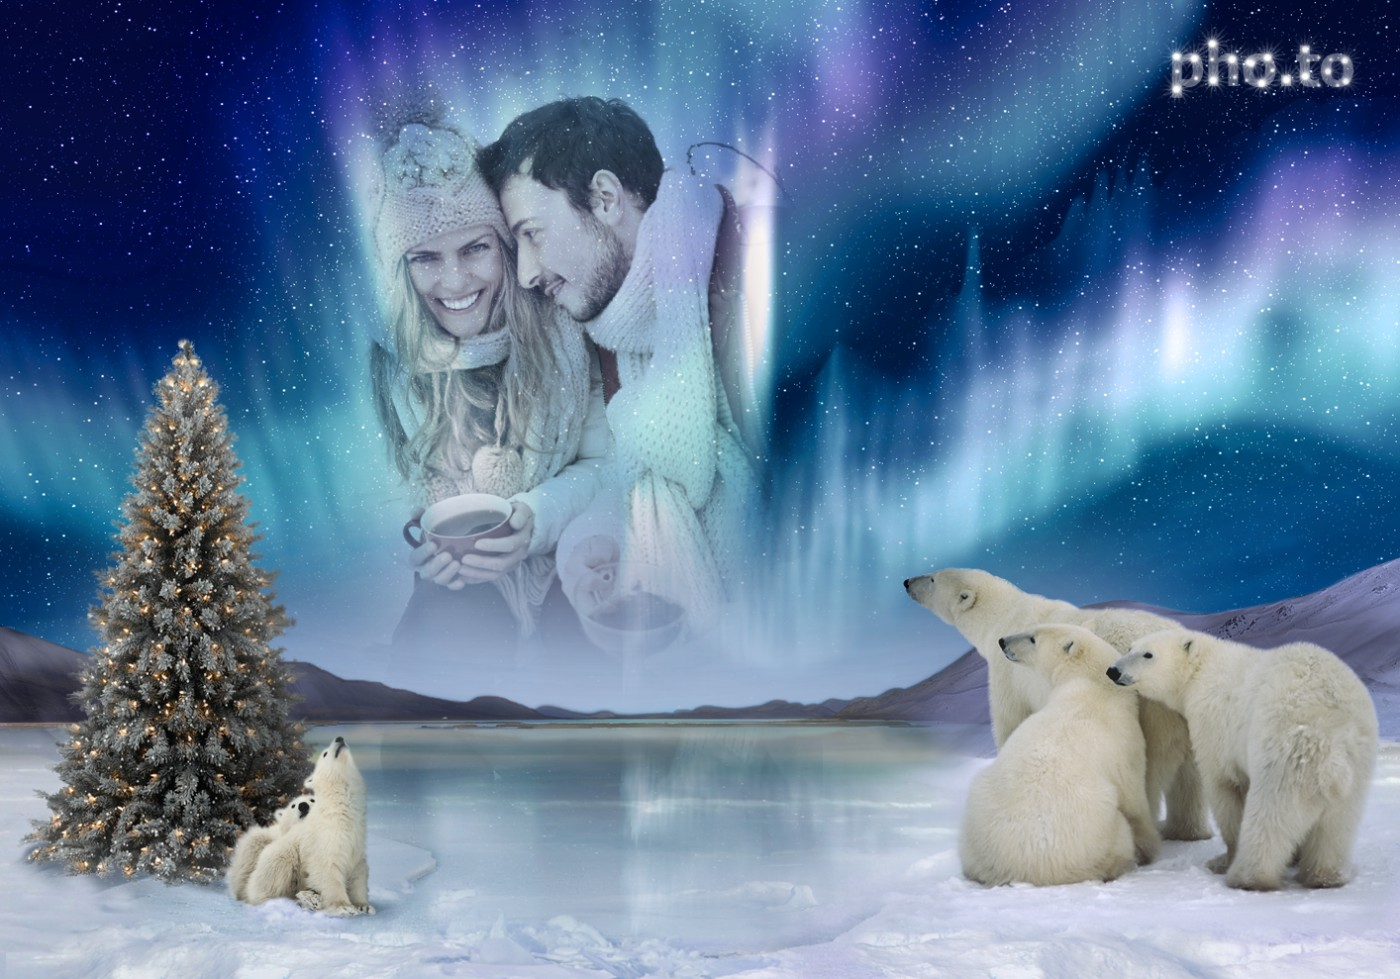 A photo of a couple is put into the scene with polar bears watching Northern Lights in the sky